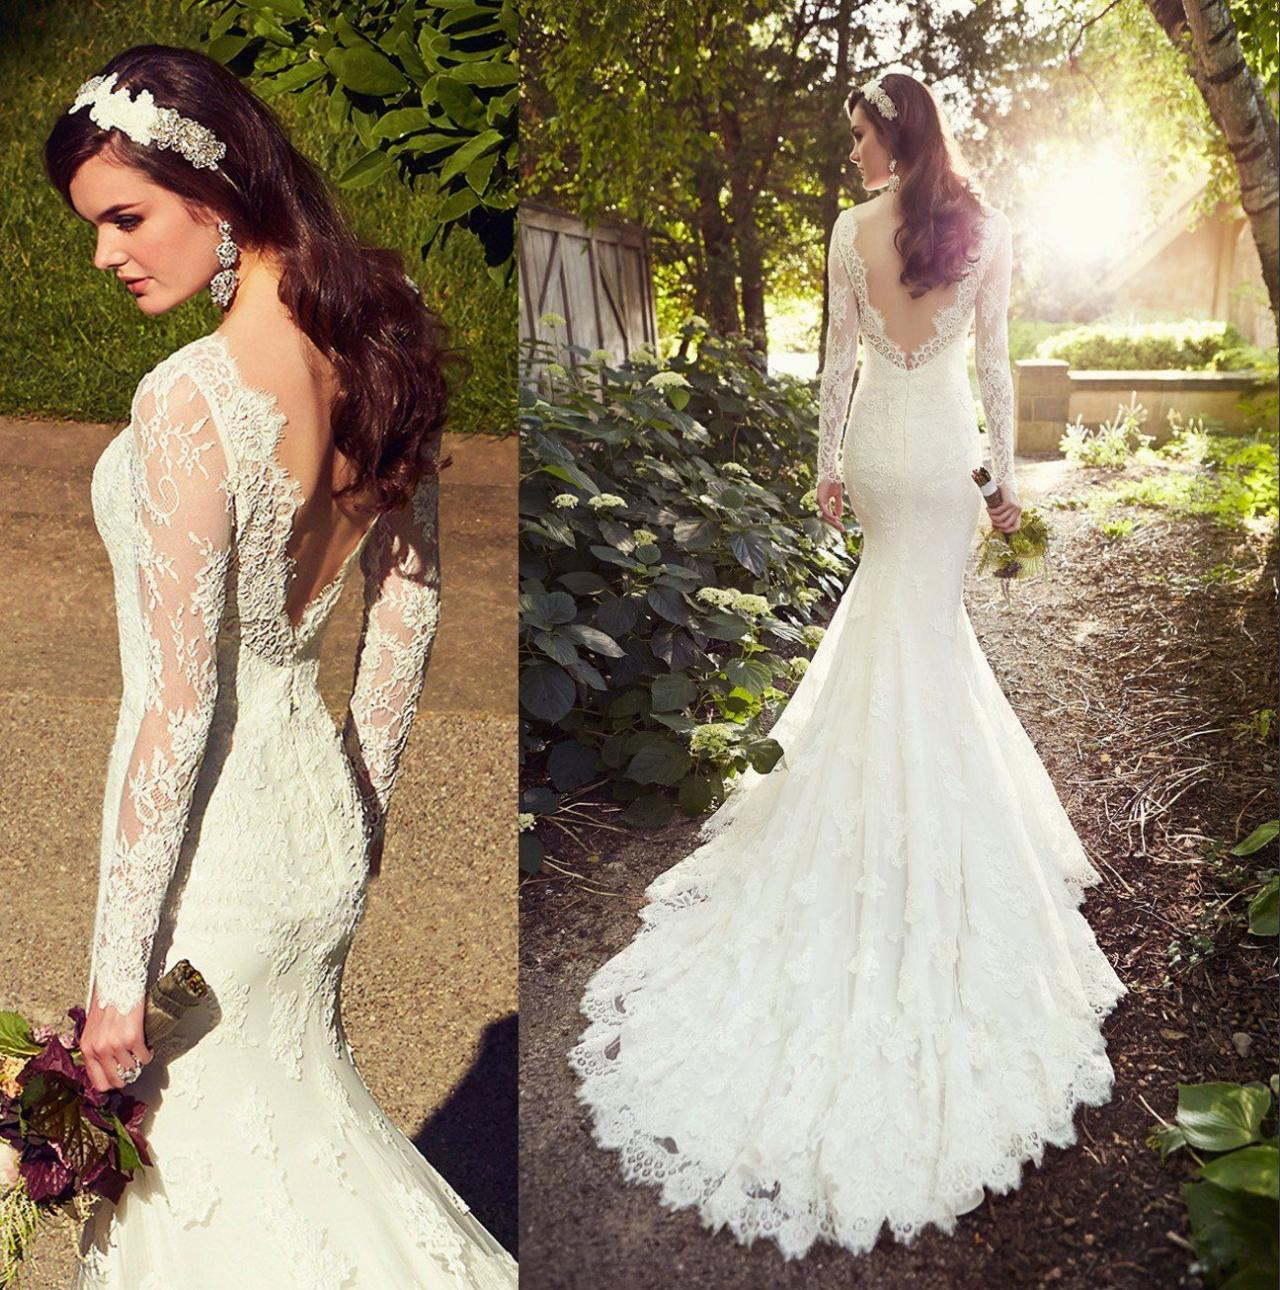 white wedding dresses long sleeves wedding gown lace wedding gowns ball gown bridal dress princess w wedding dress long sleeve White Wedding Dresses Long Sleeves Wedding Gown Lace Wedding Gowns Ball Gown Bridal Dress Princess Wedding Dress Beautiful Brides Dress With Long Train